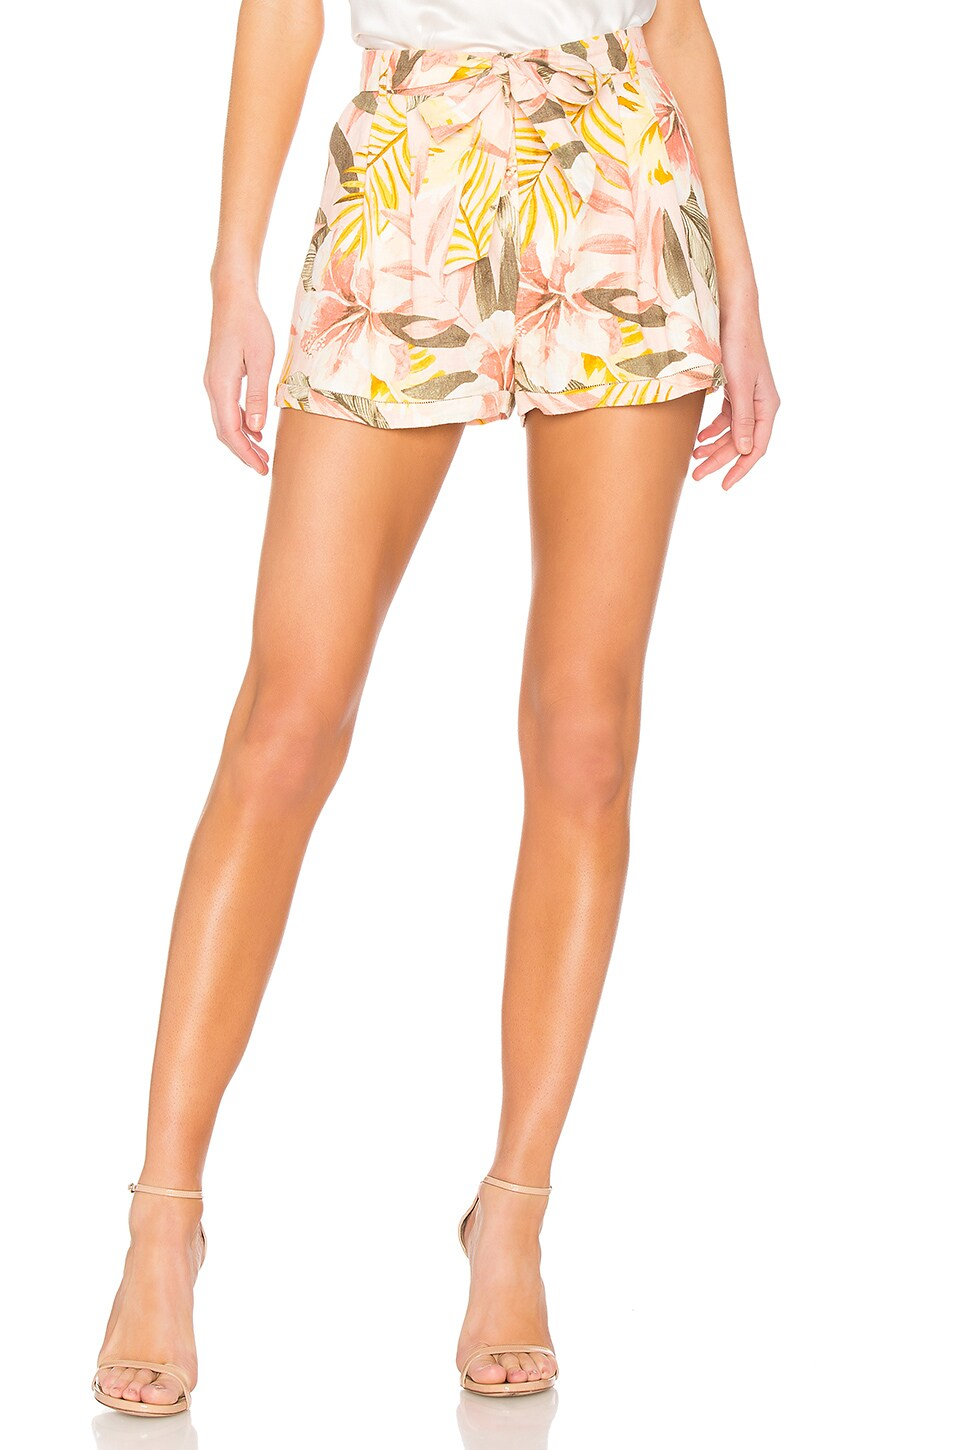 Joie Jaklynn Shorts in Dusty Nude